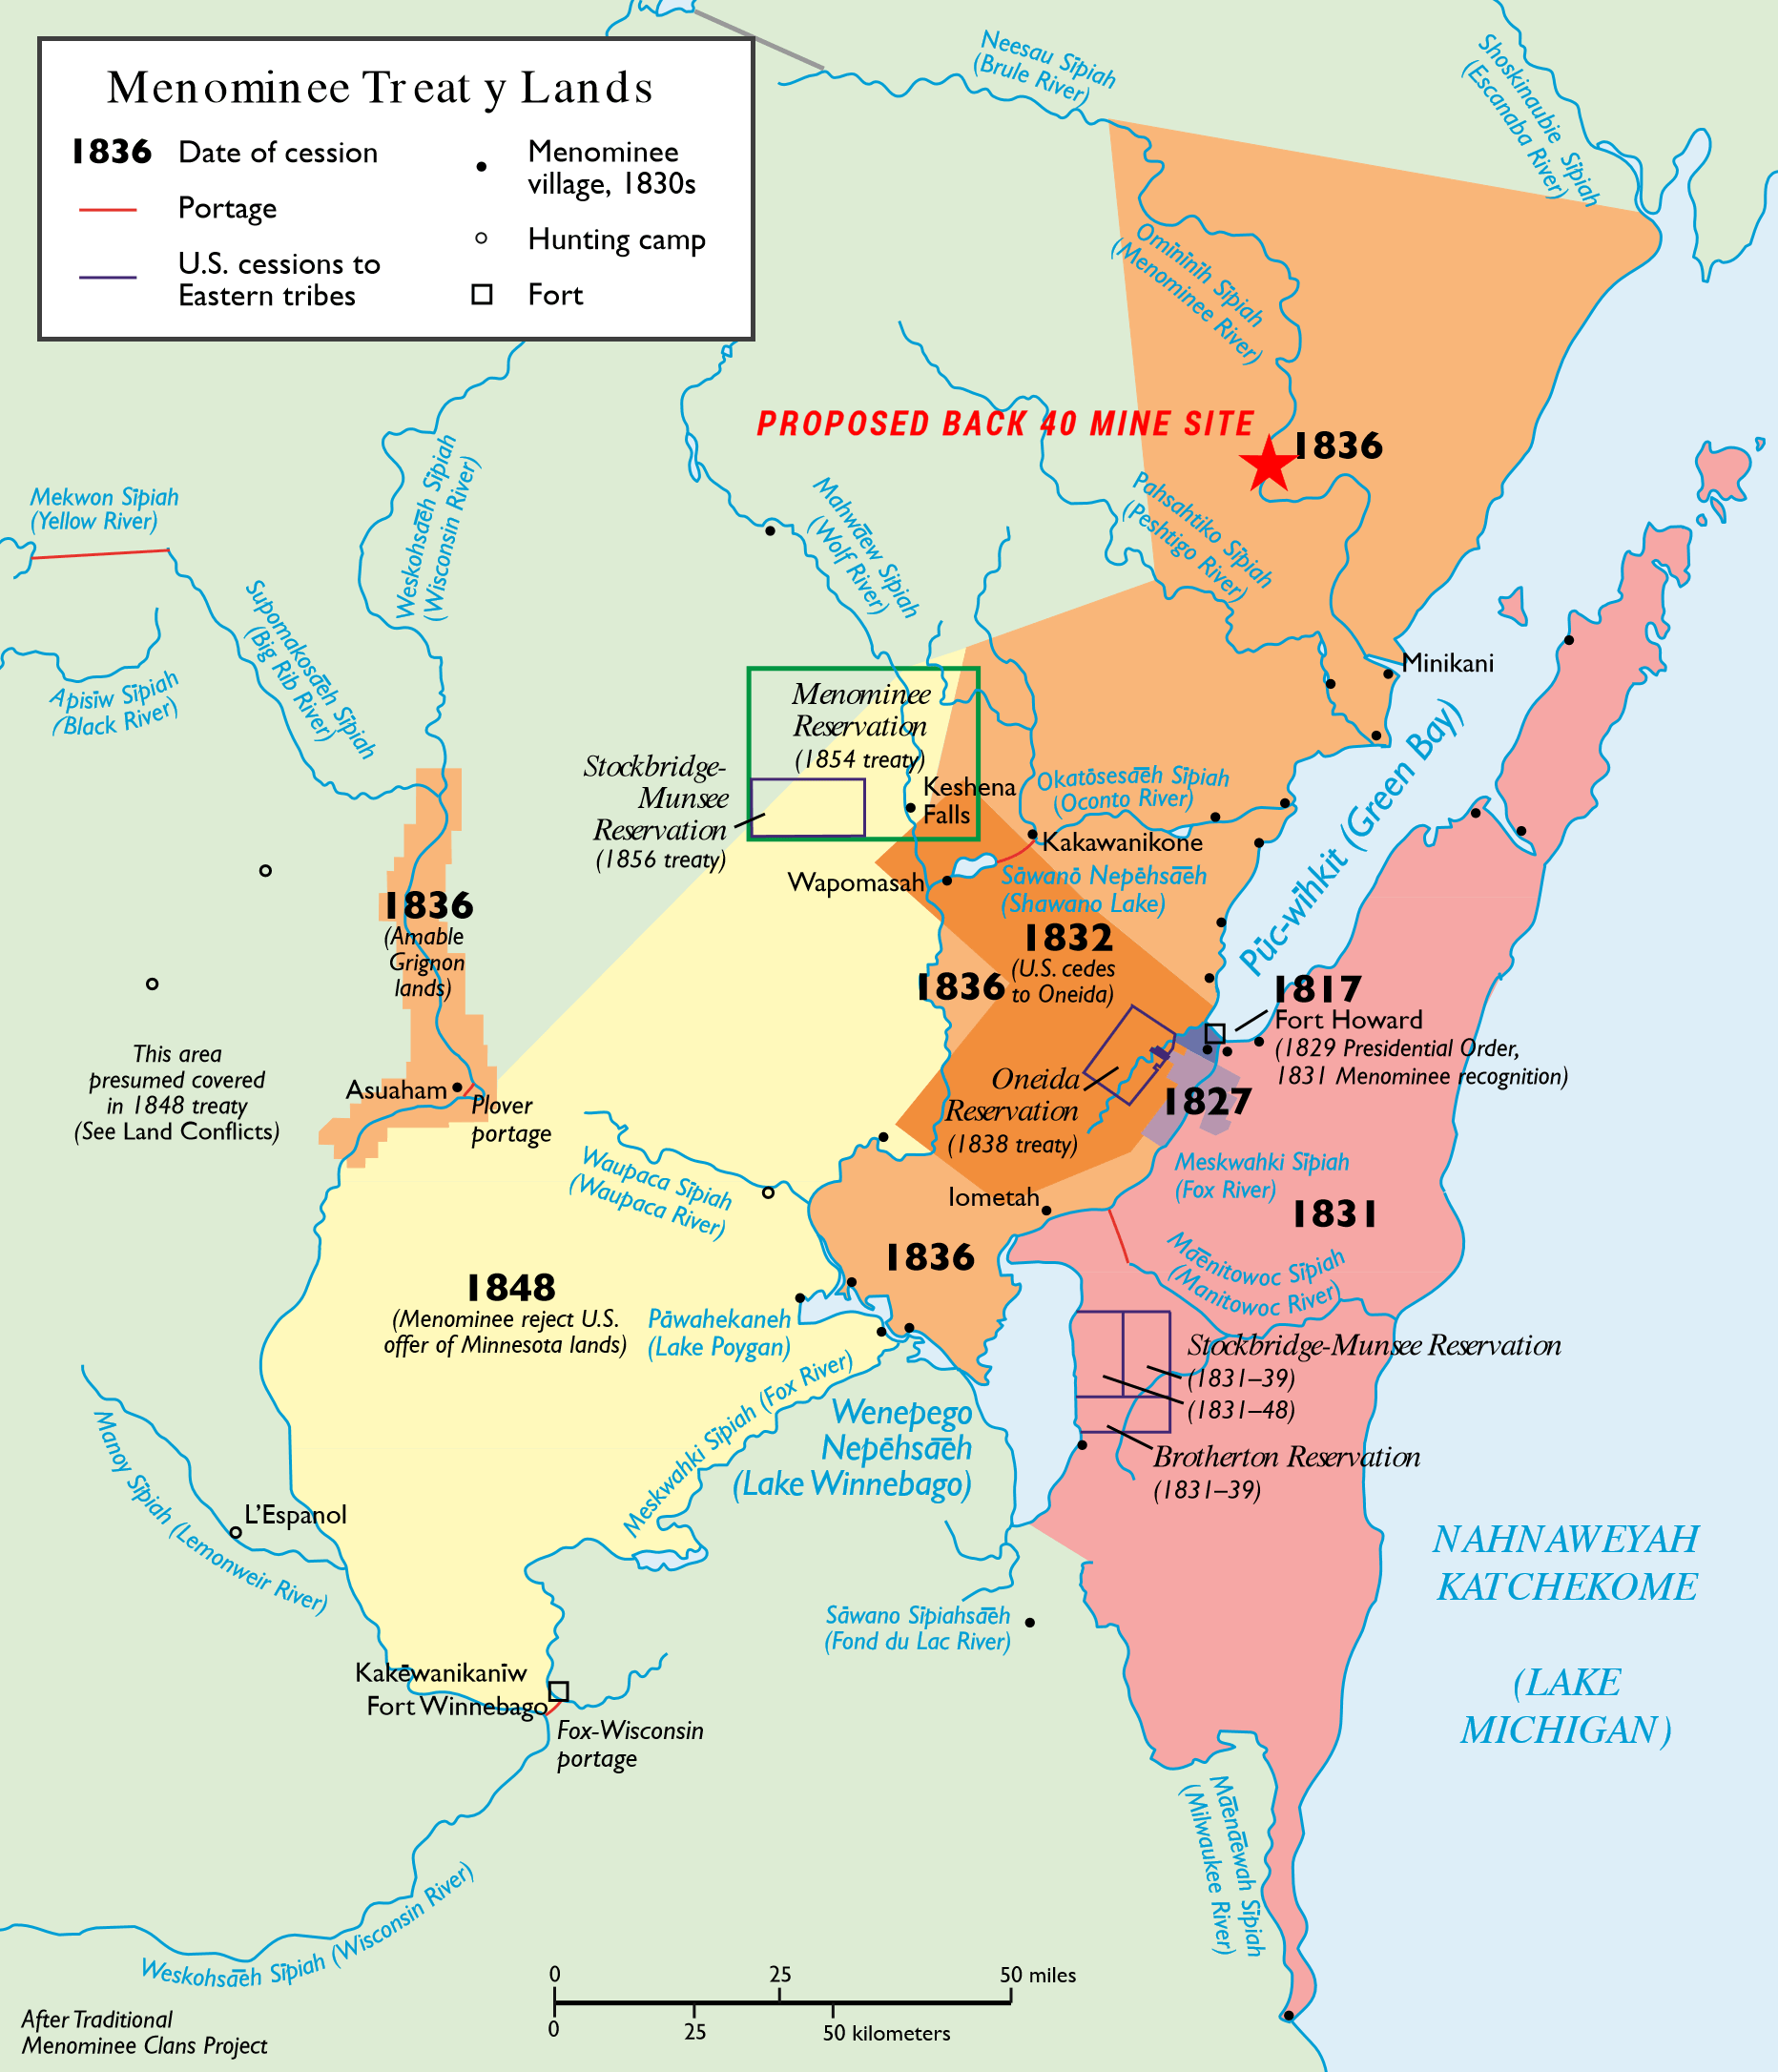 Menominee Treaty Land Map